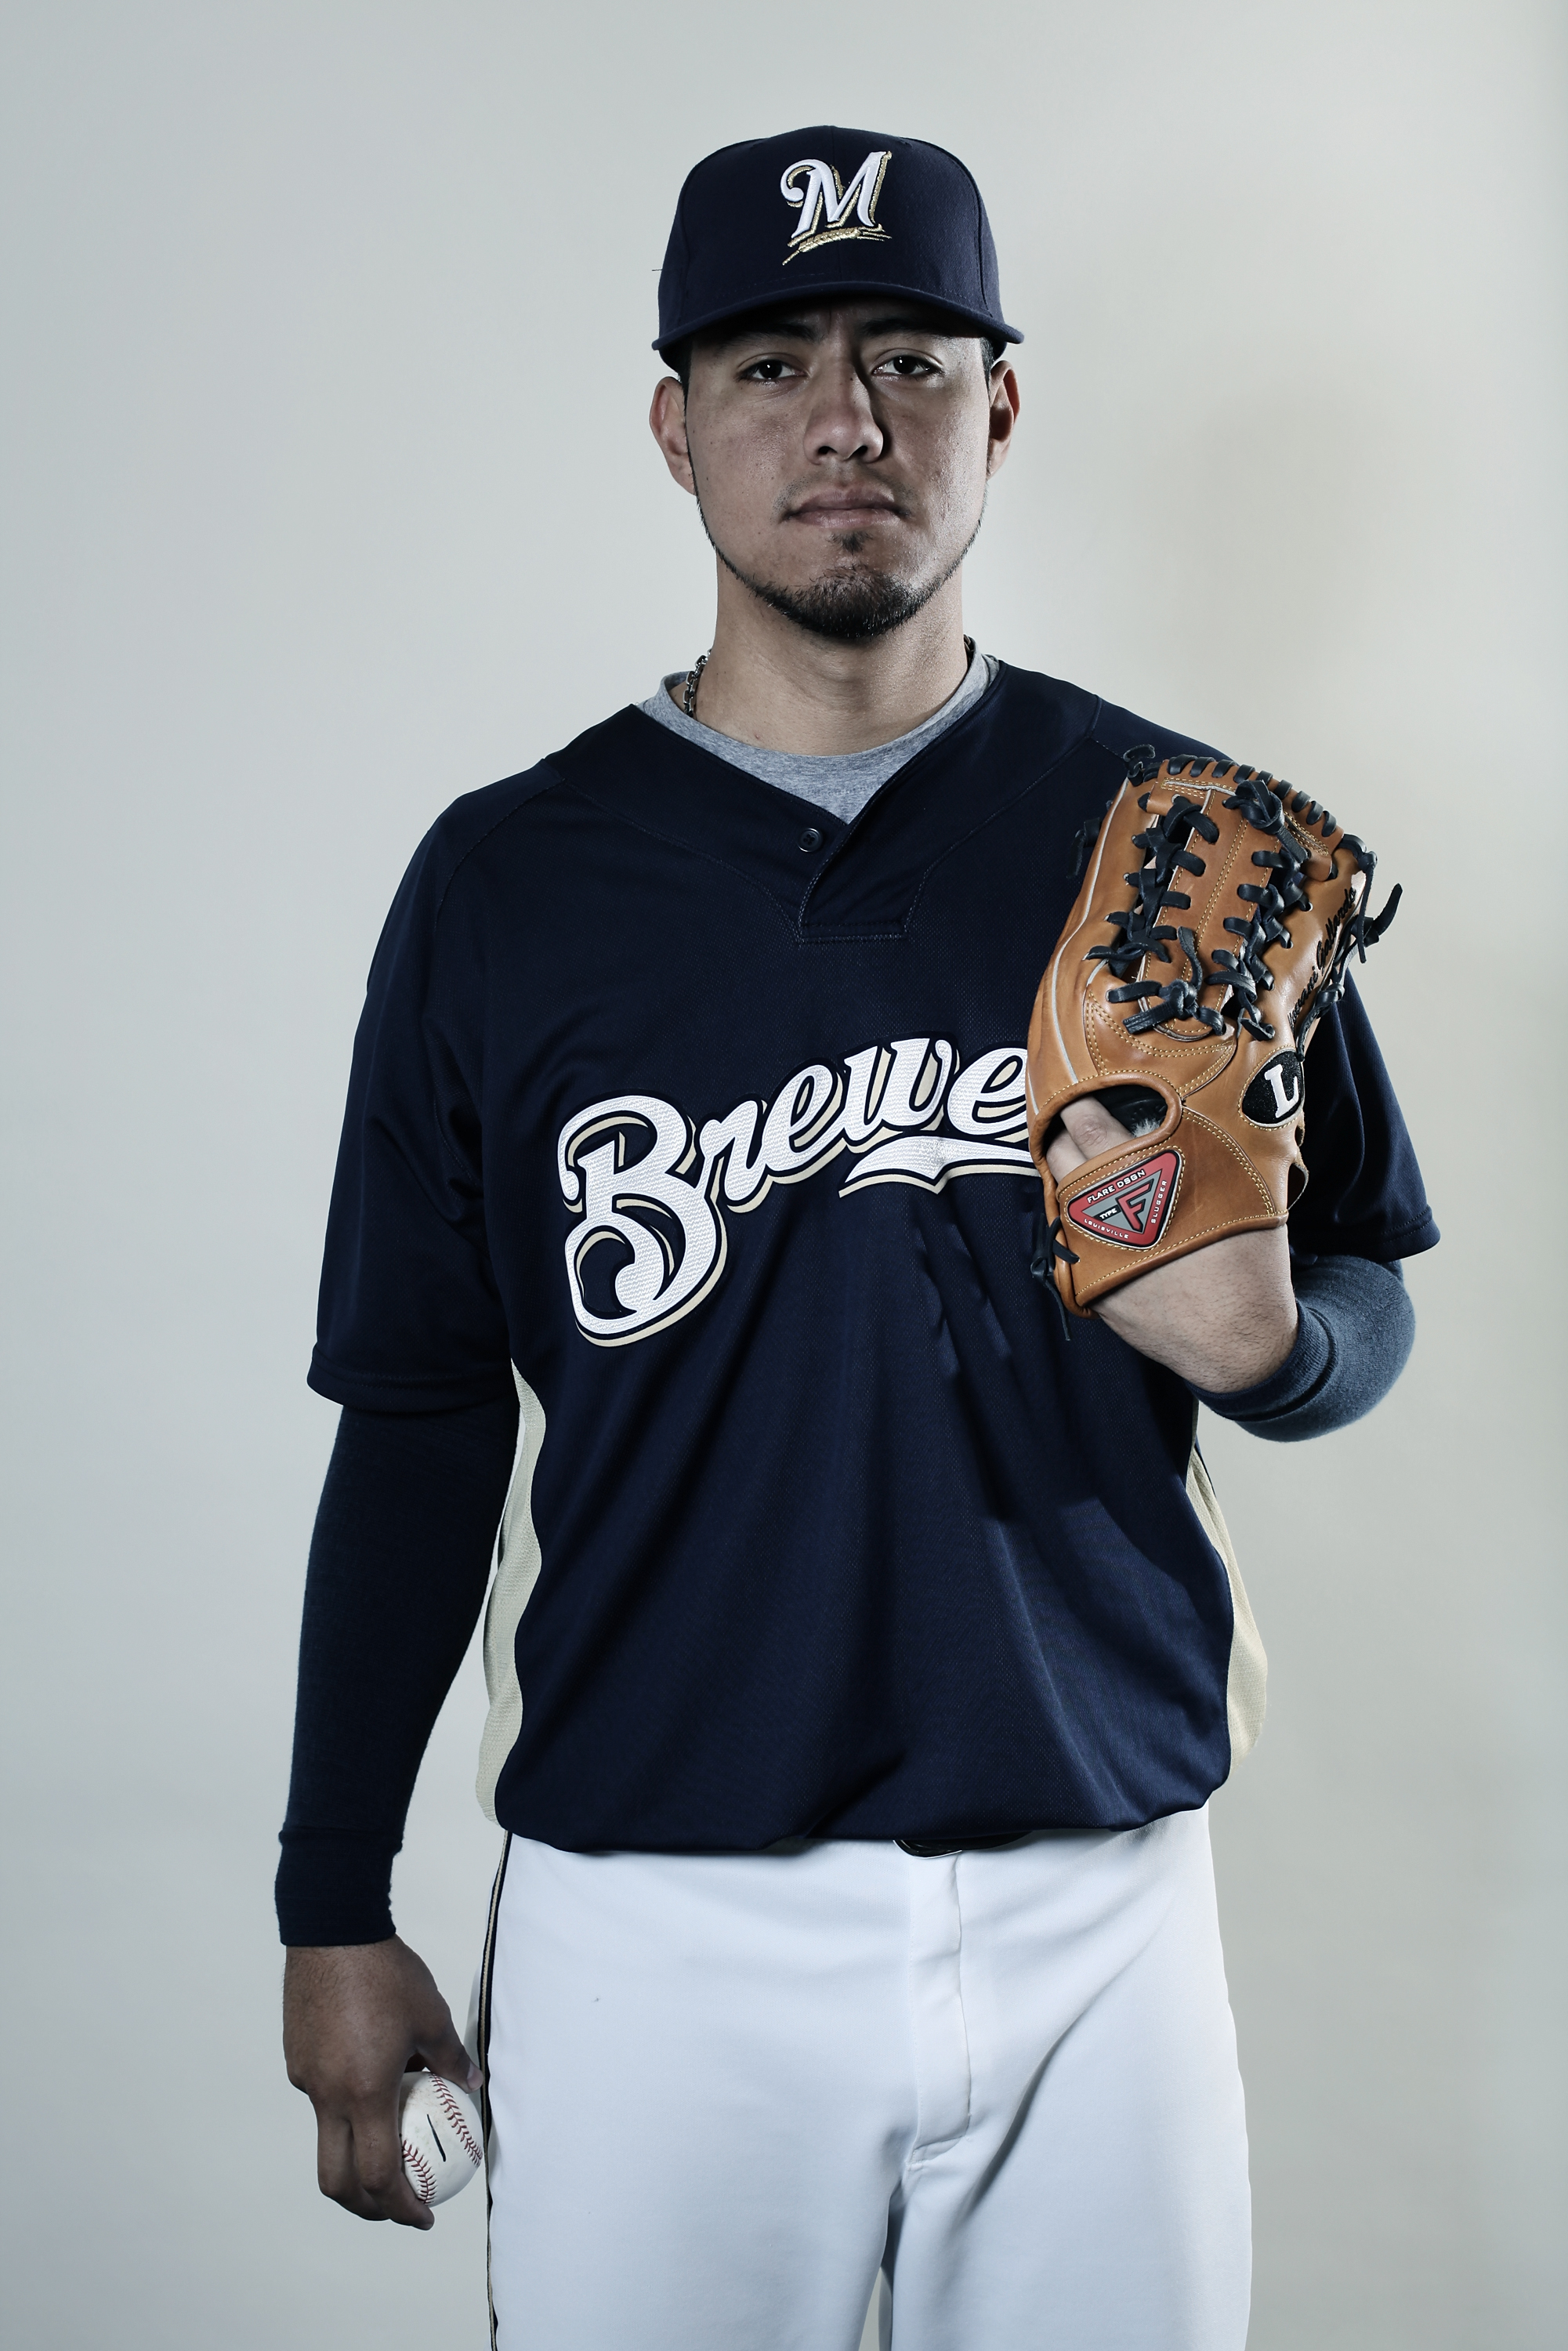 MARYVALE, AZ - MARCH 01:  (EDITORS NOTE: THIS IMAGES HAS BEEN DIGITALLY DESATURATED) Yovani Gallardo #49 poses for a portrait during the Milwaukee Brewers Photo Day at the Maryvale  Baseball Park on March 1, 2010 in Maryvale, Arizona.  (Photo by Jonathan